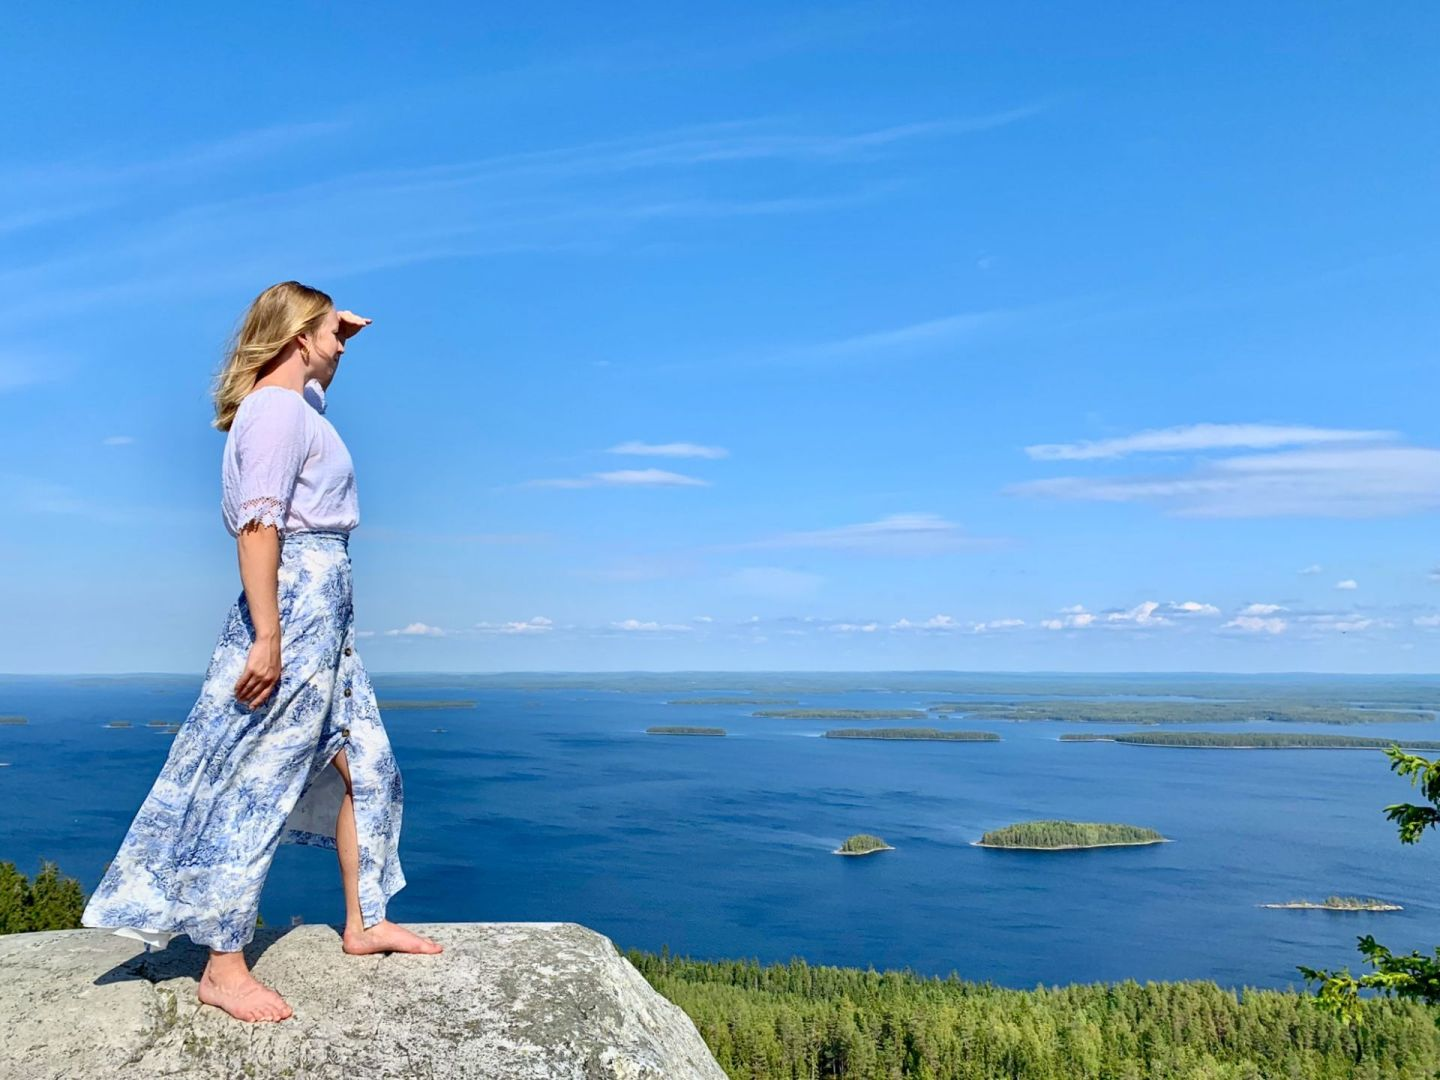 Beautiful views from Paha-Koli in Koli National Park